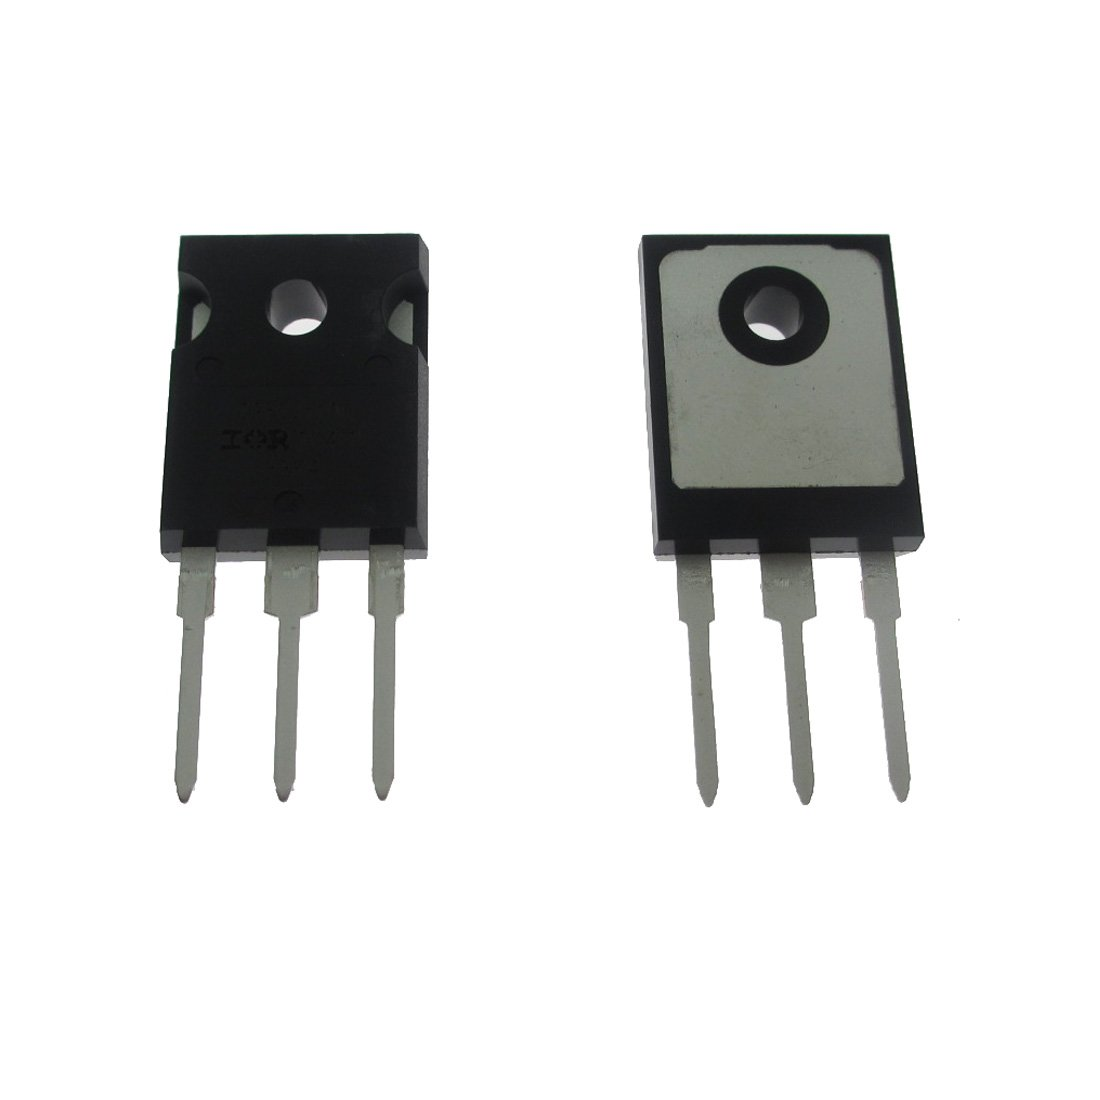 5 x IRFP250 IRFP250N Power MOSFET N-Channel 30A 200V FREE SHIPPING